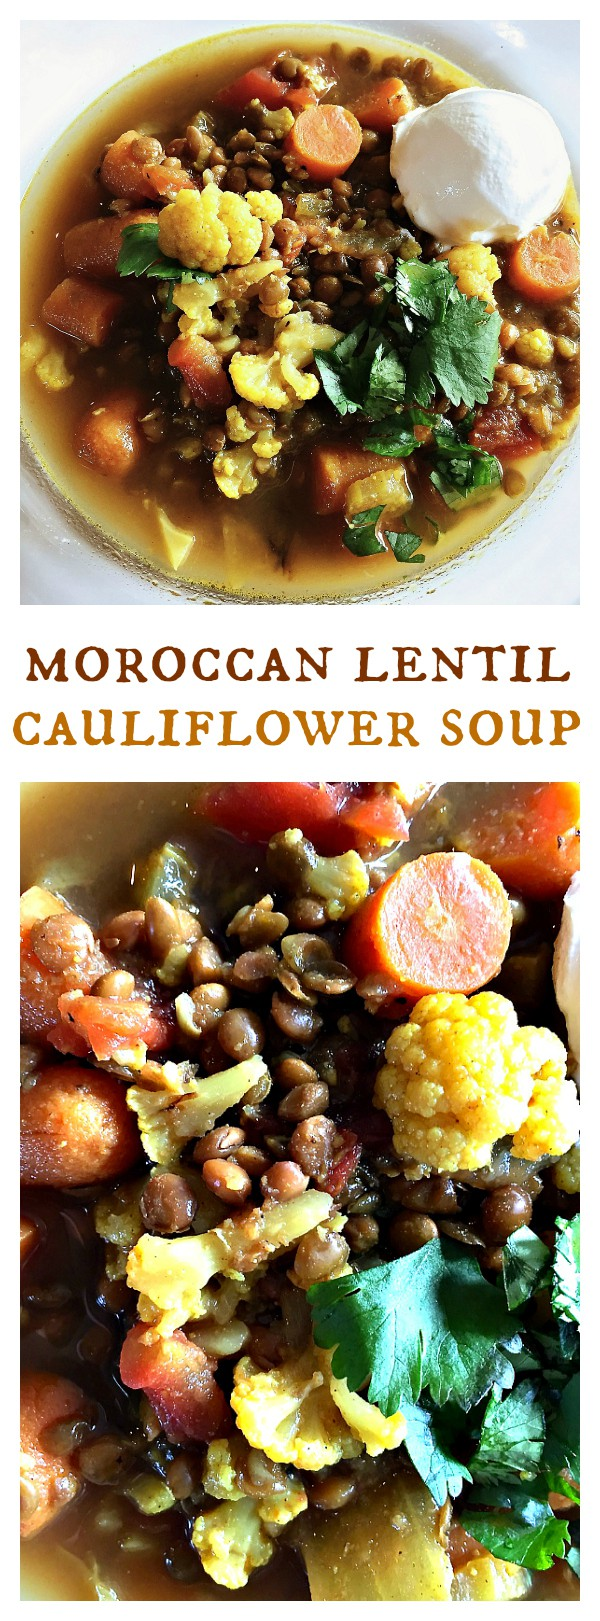 This Moroccan Lentil Cauliflower Soup is a delicious winter Vegetarian soup to serve for lunch or dinner!